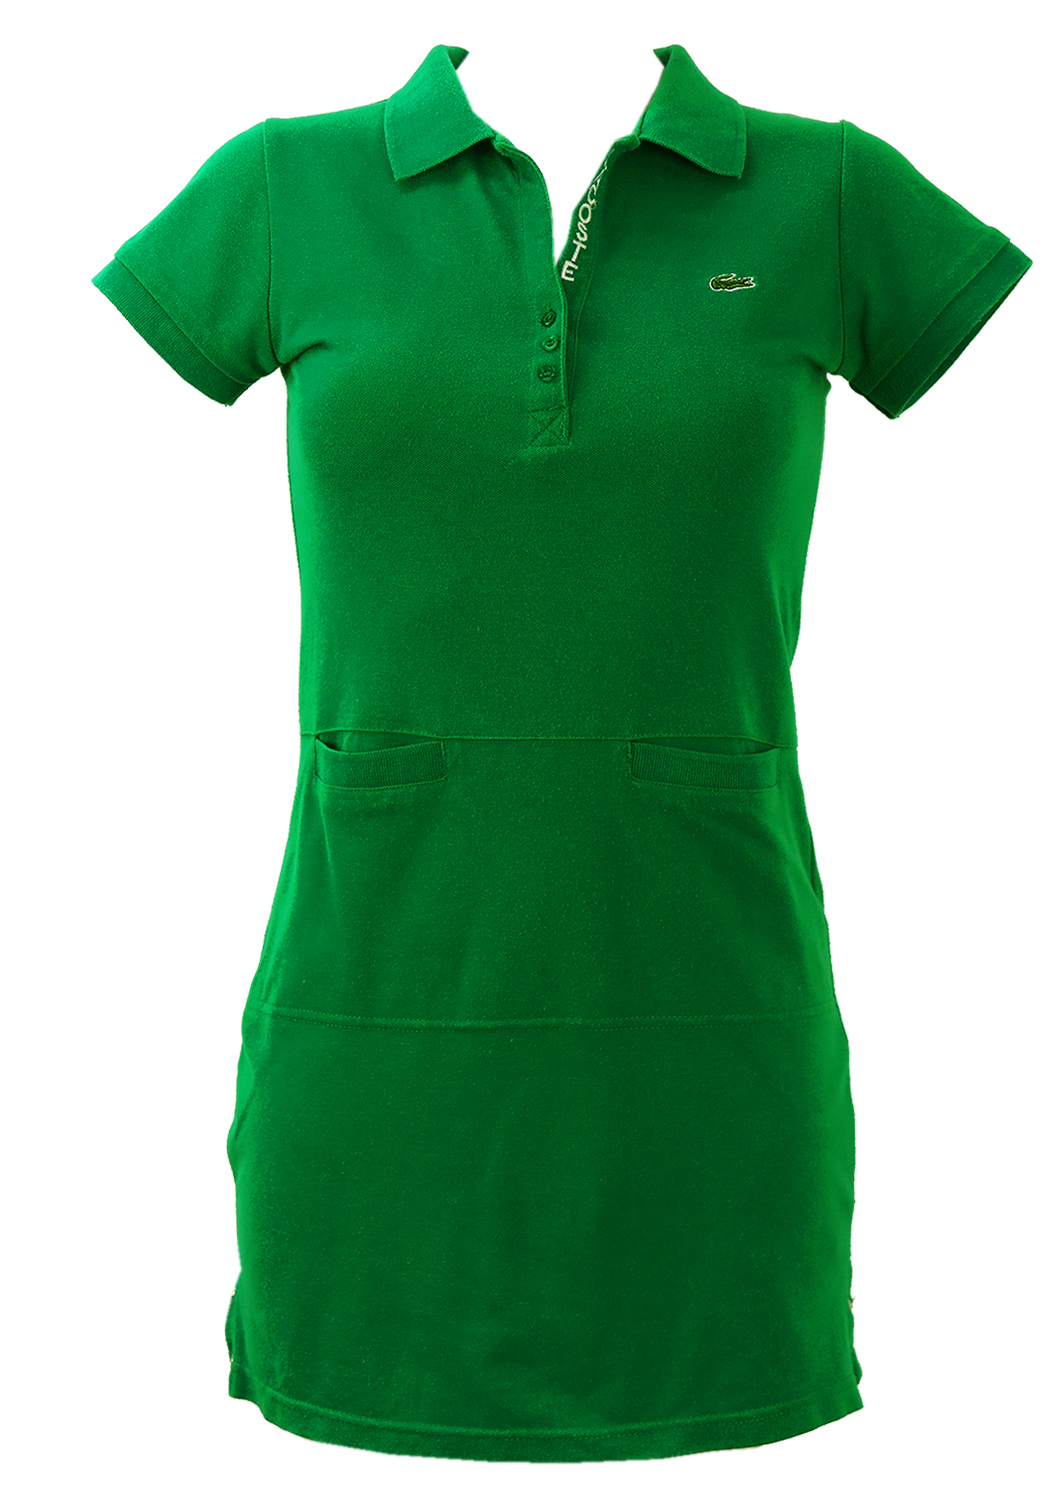 Lacoste 'Michael Young' Green Polo Shirt Dress – XS/S ...